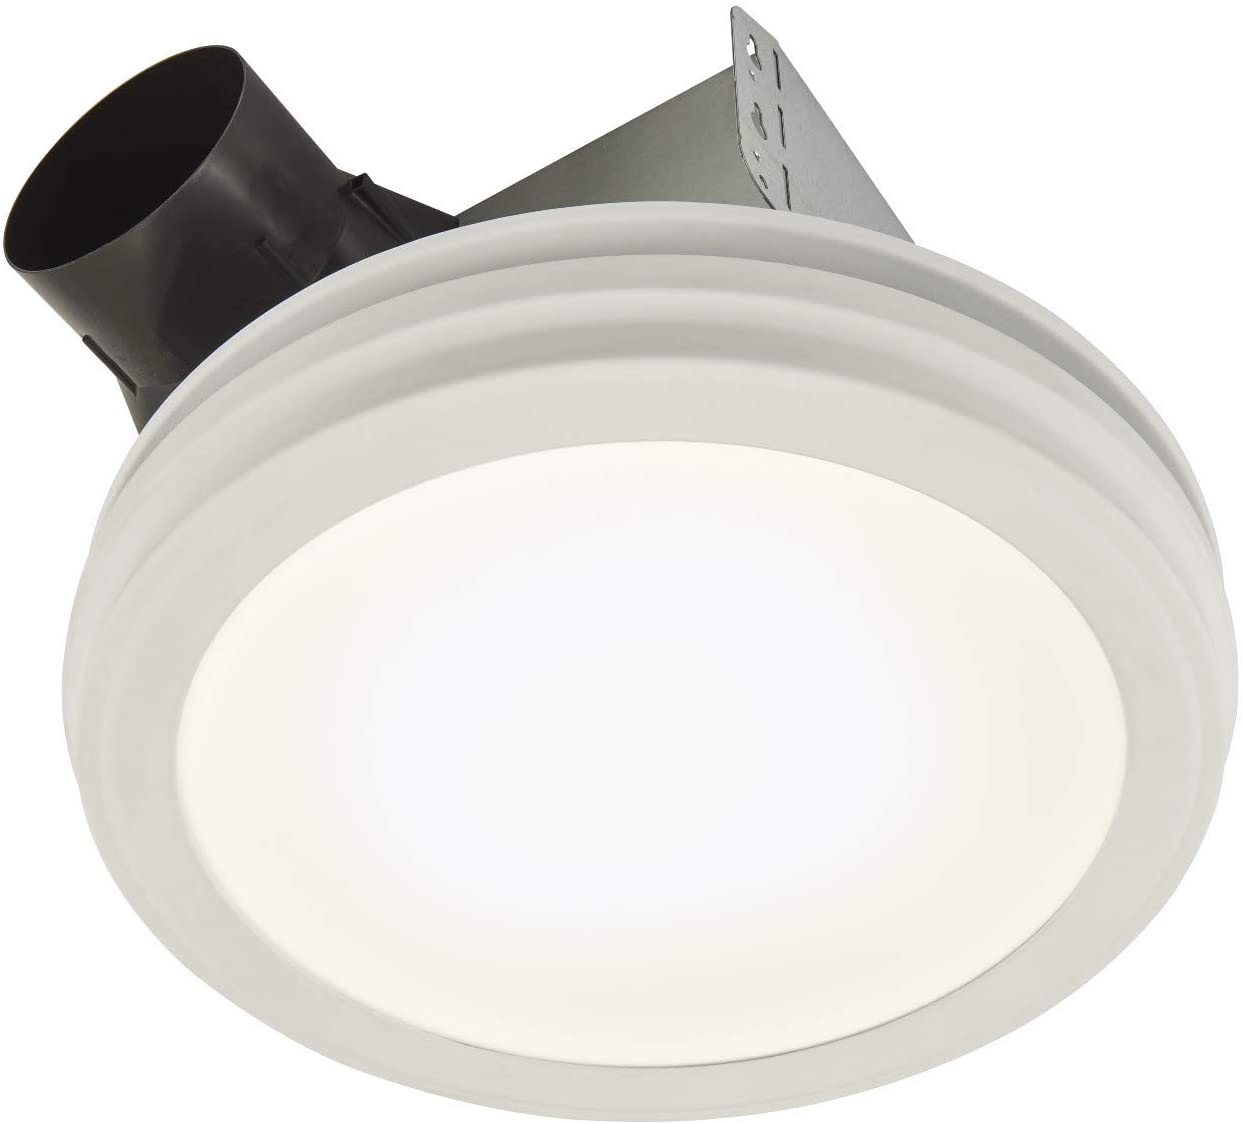 Broan-NuTone AER110SLW Roomside Humidity Sensing Exhaust Round Flat Panel LED Light, White, Energy Star Certified, 110 CFM, 1.5 Sones Bath Fan